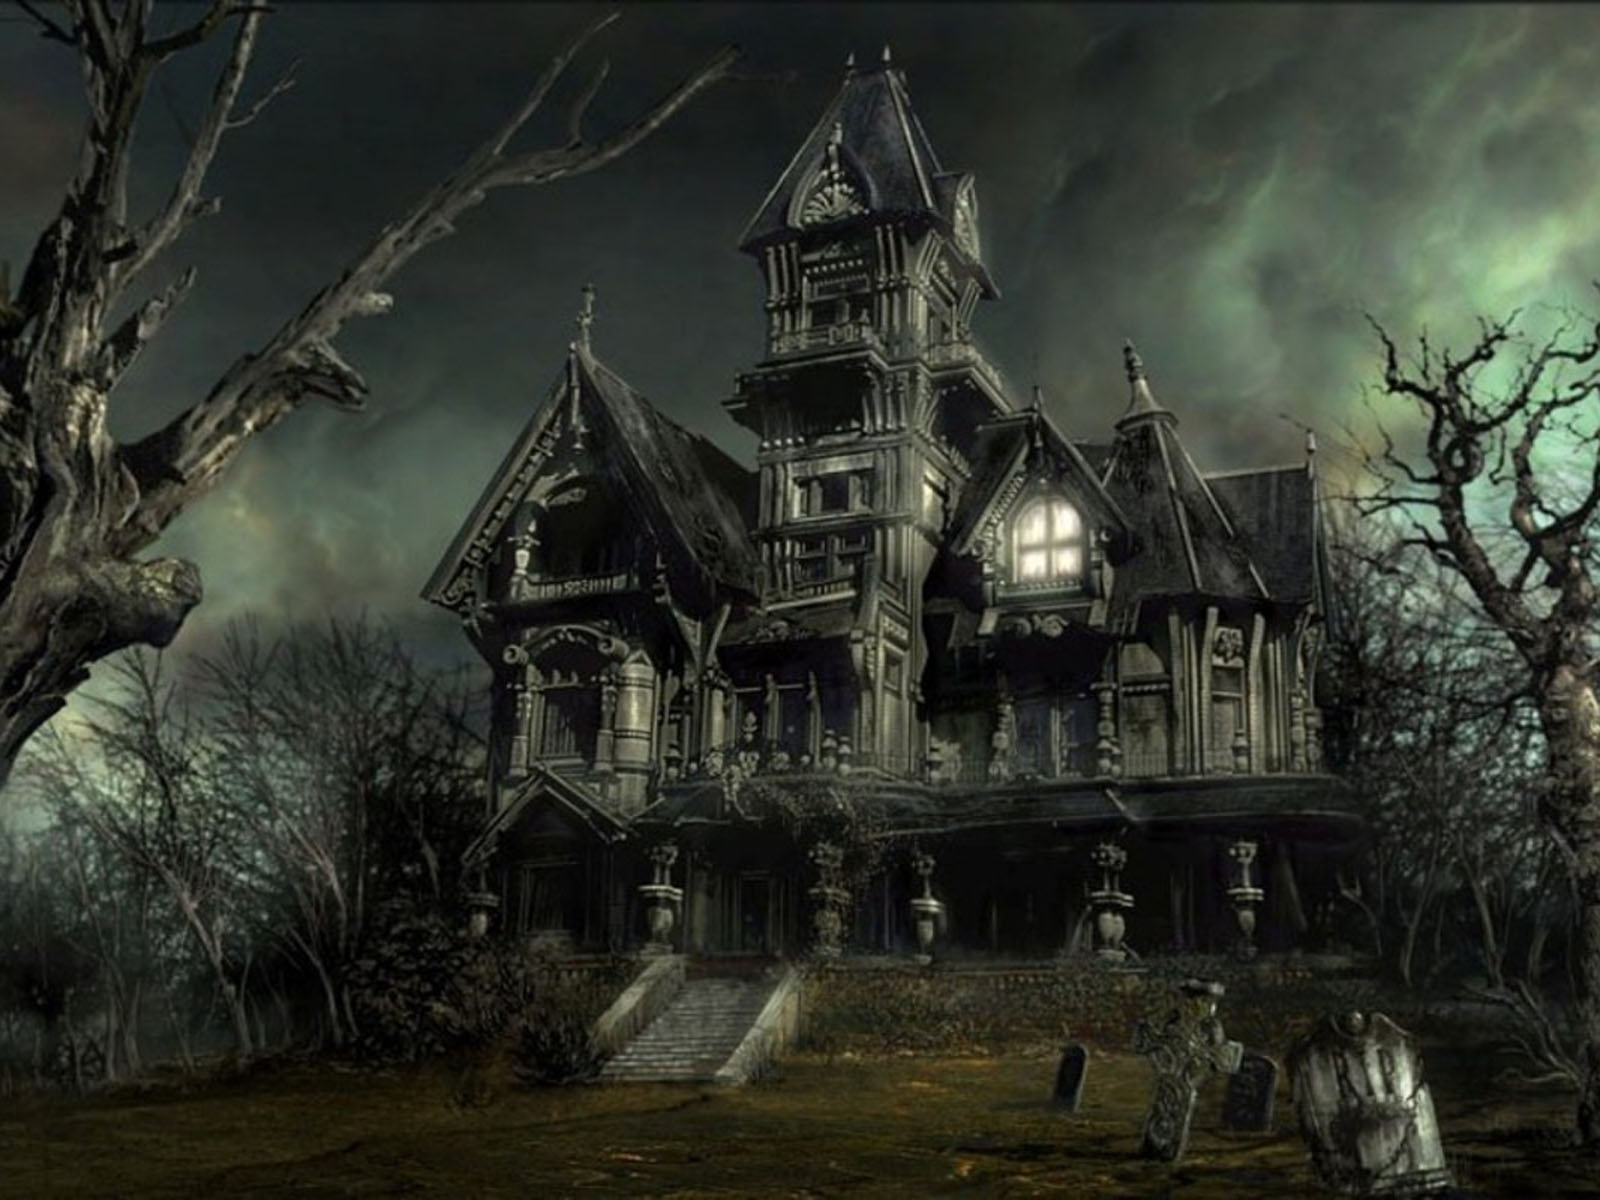 Tag horror house wallpapers images photos and pictures for free